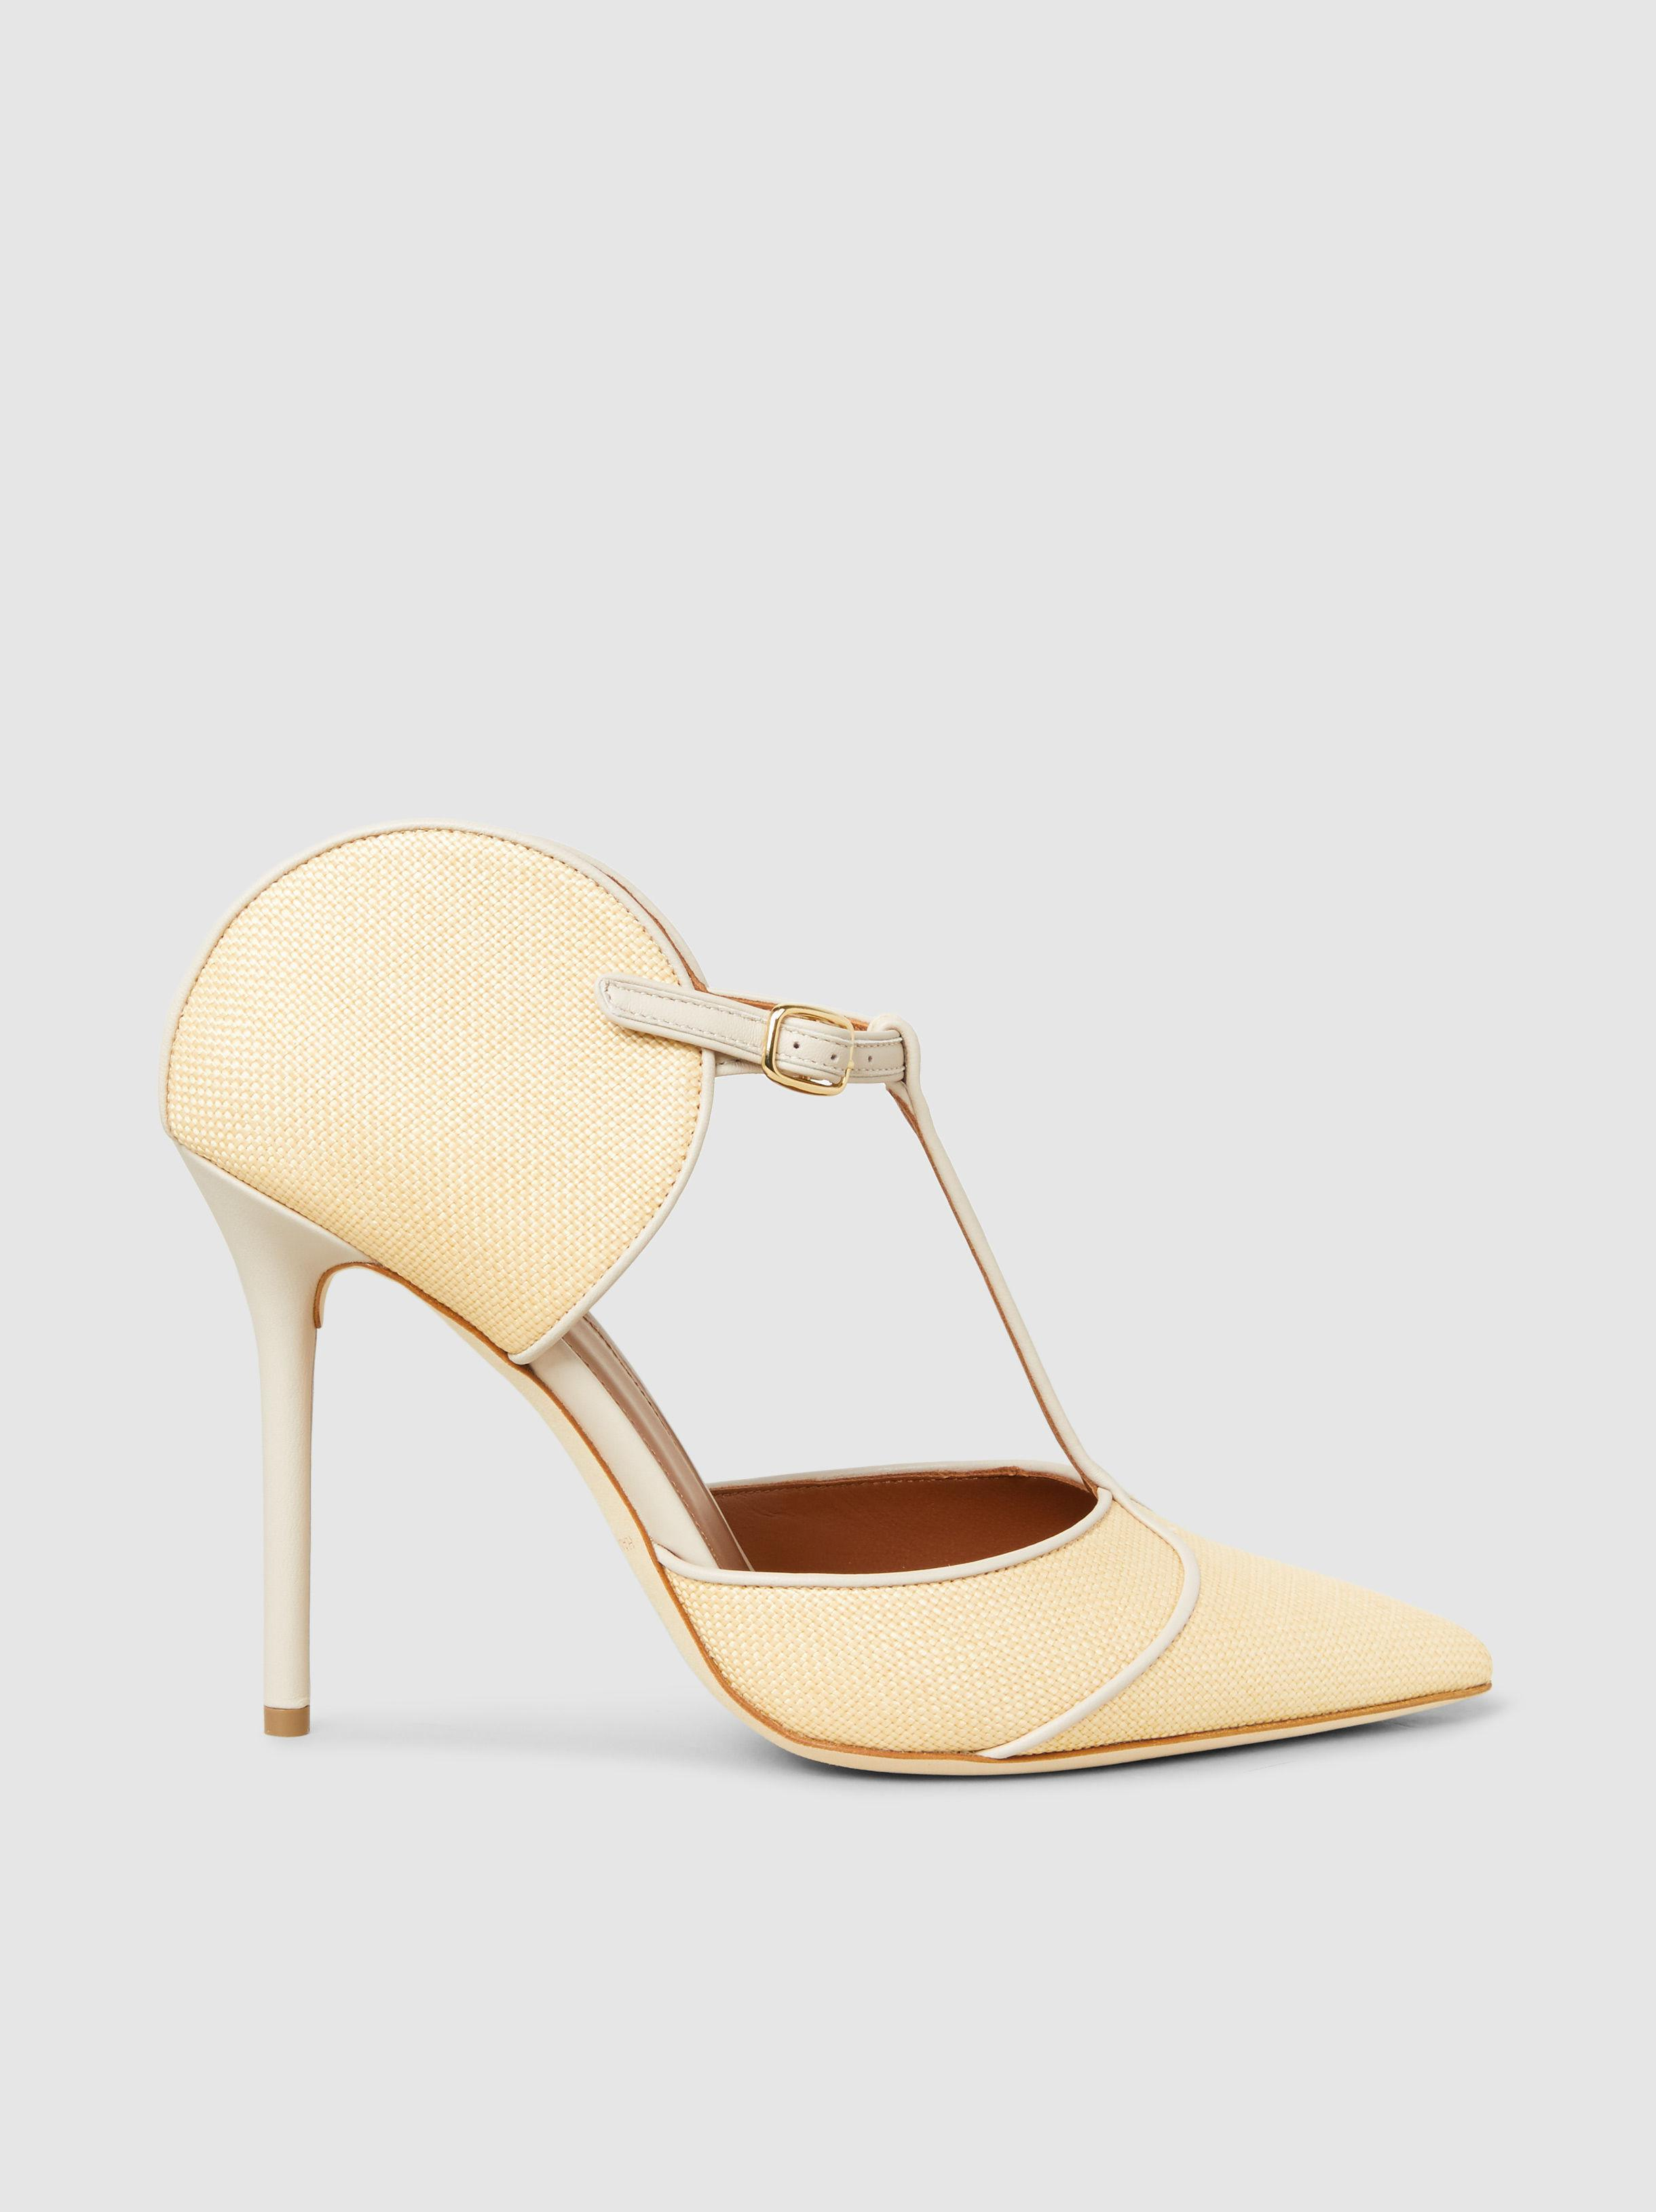 Malone Souliers Imogen pumps buy cheap prices low shipping cheap authentic outlet outlet factory outlet hE3c0hjo